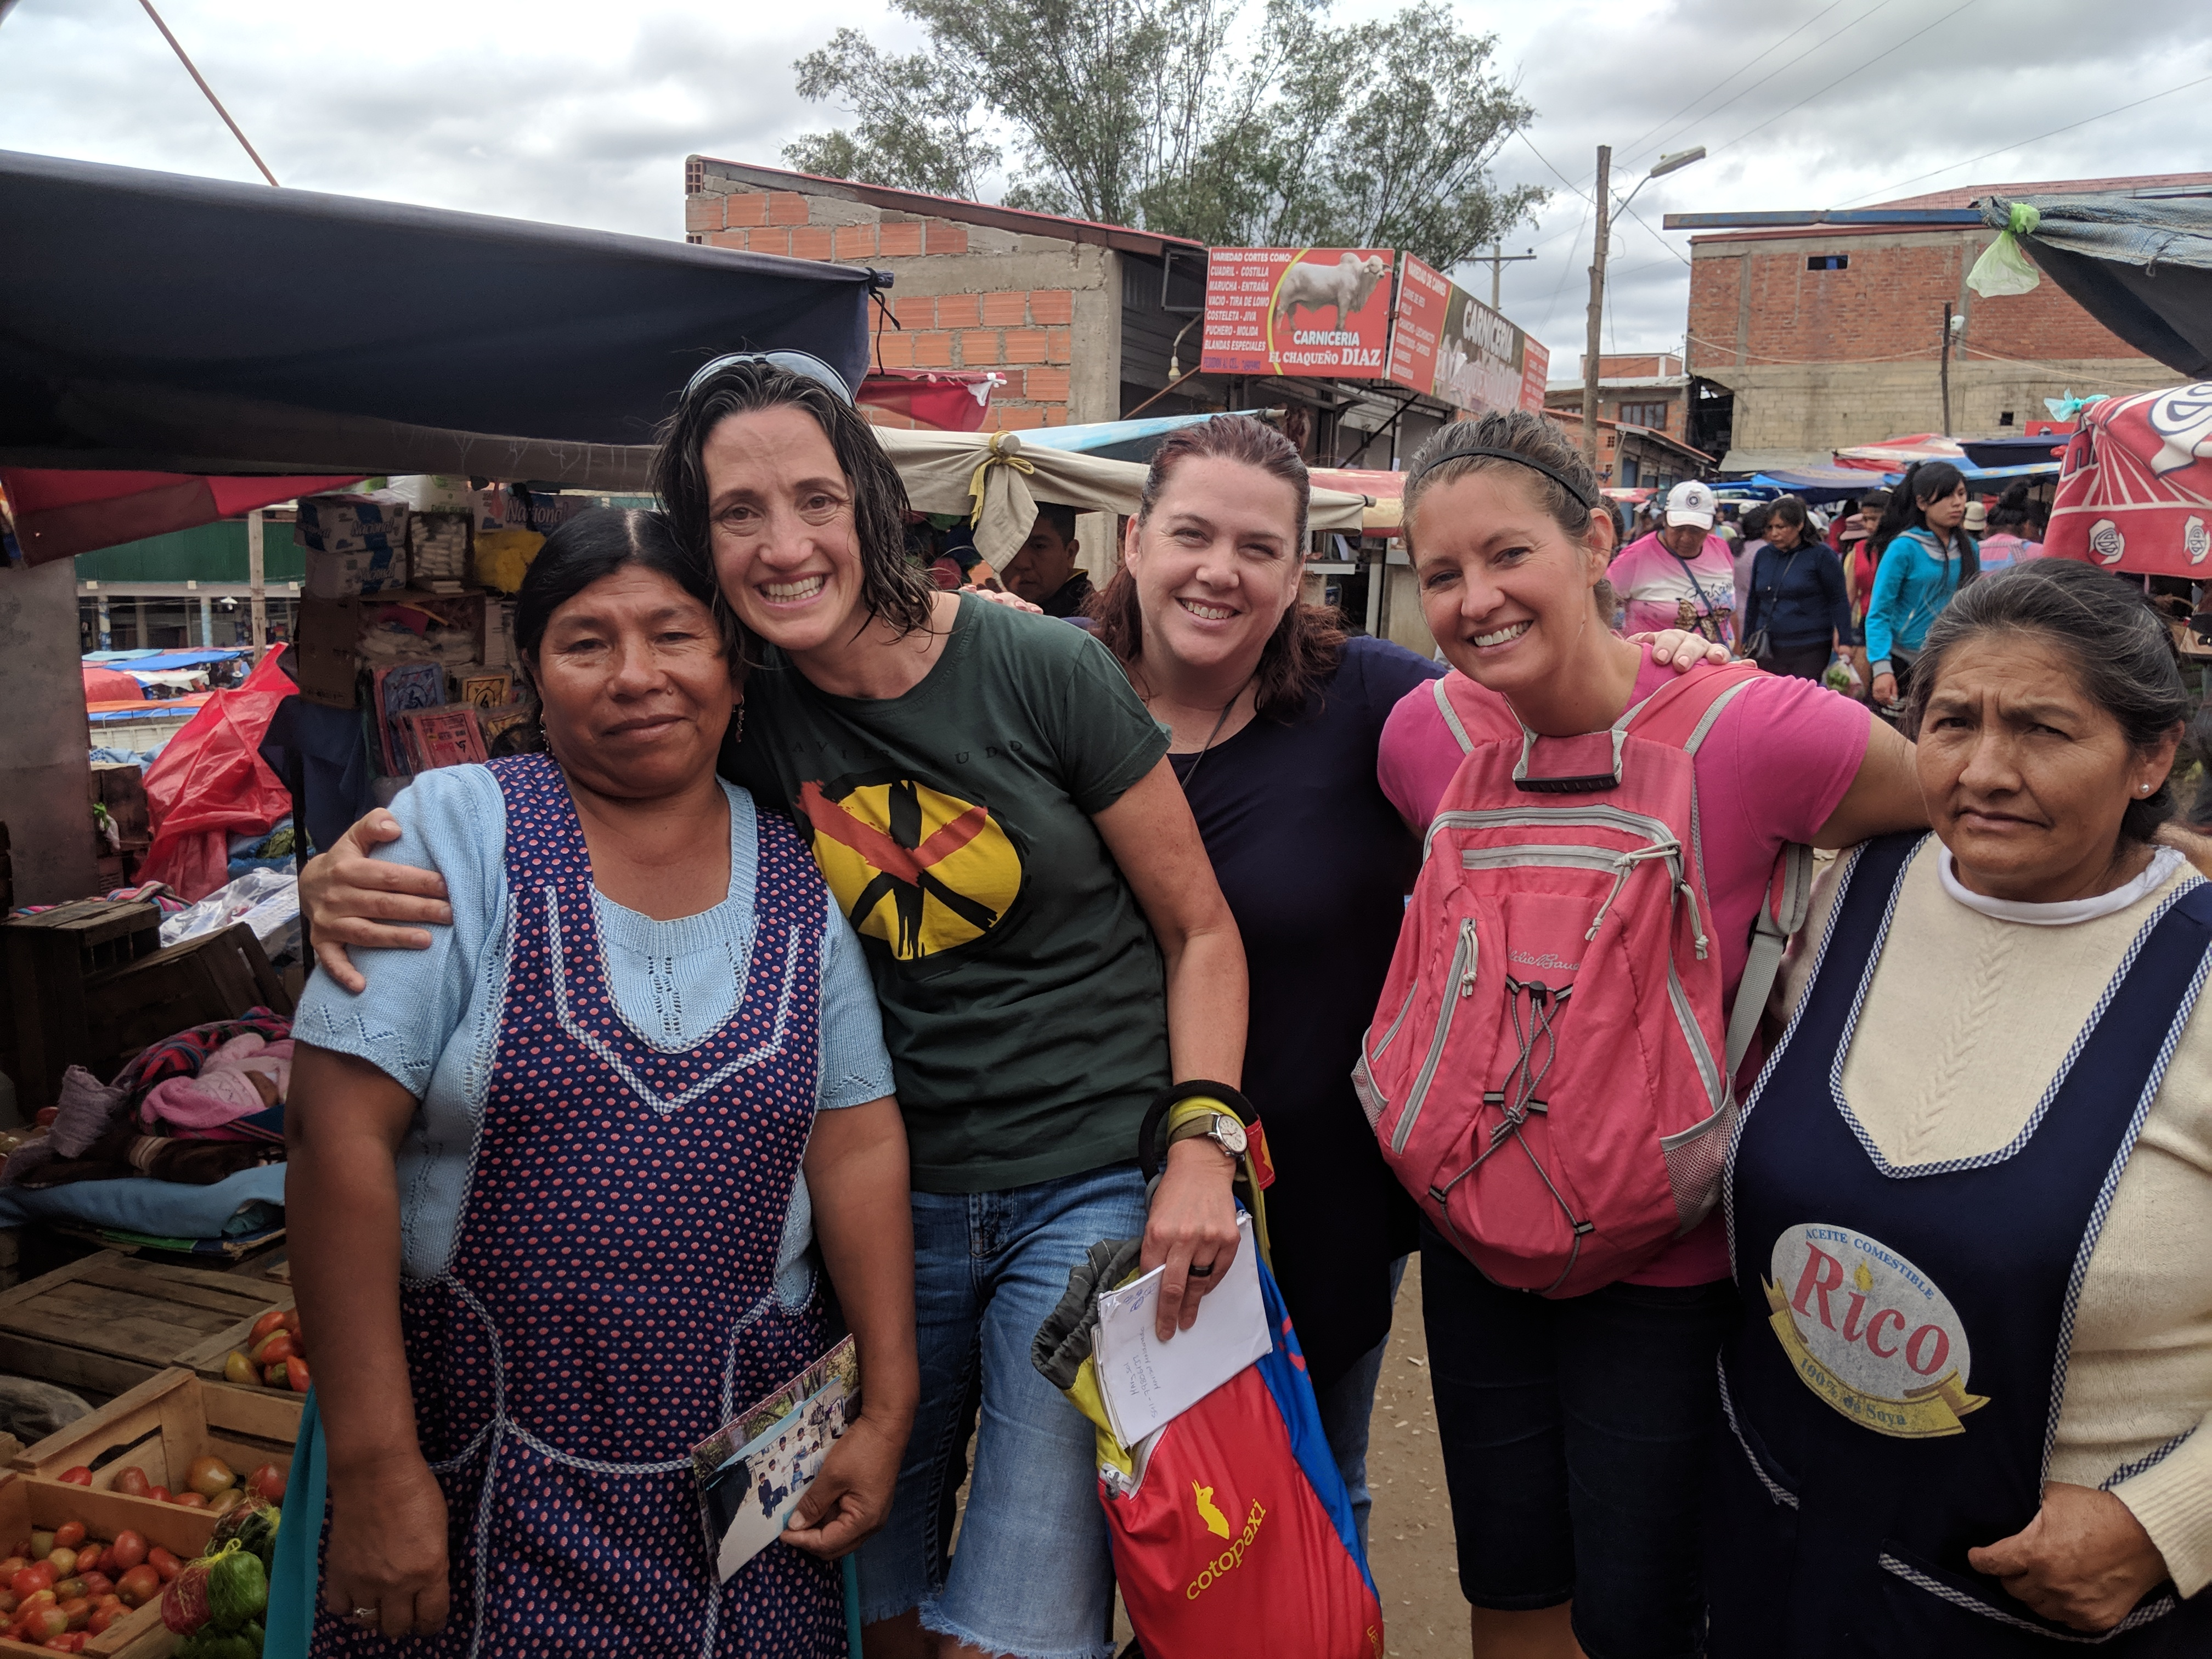 From left: Celia Quispe, Tavia Mathers, Kristen Bartholomew, Ginny Watts, and another member that works in the El Campecino market.